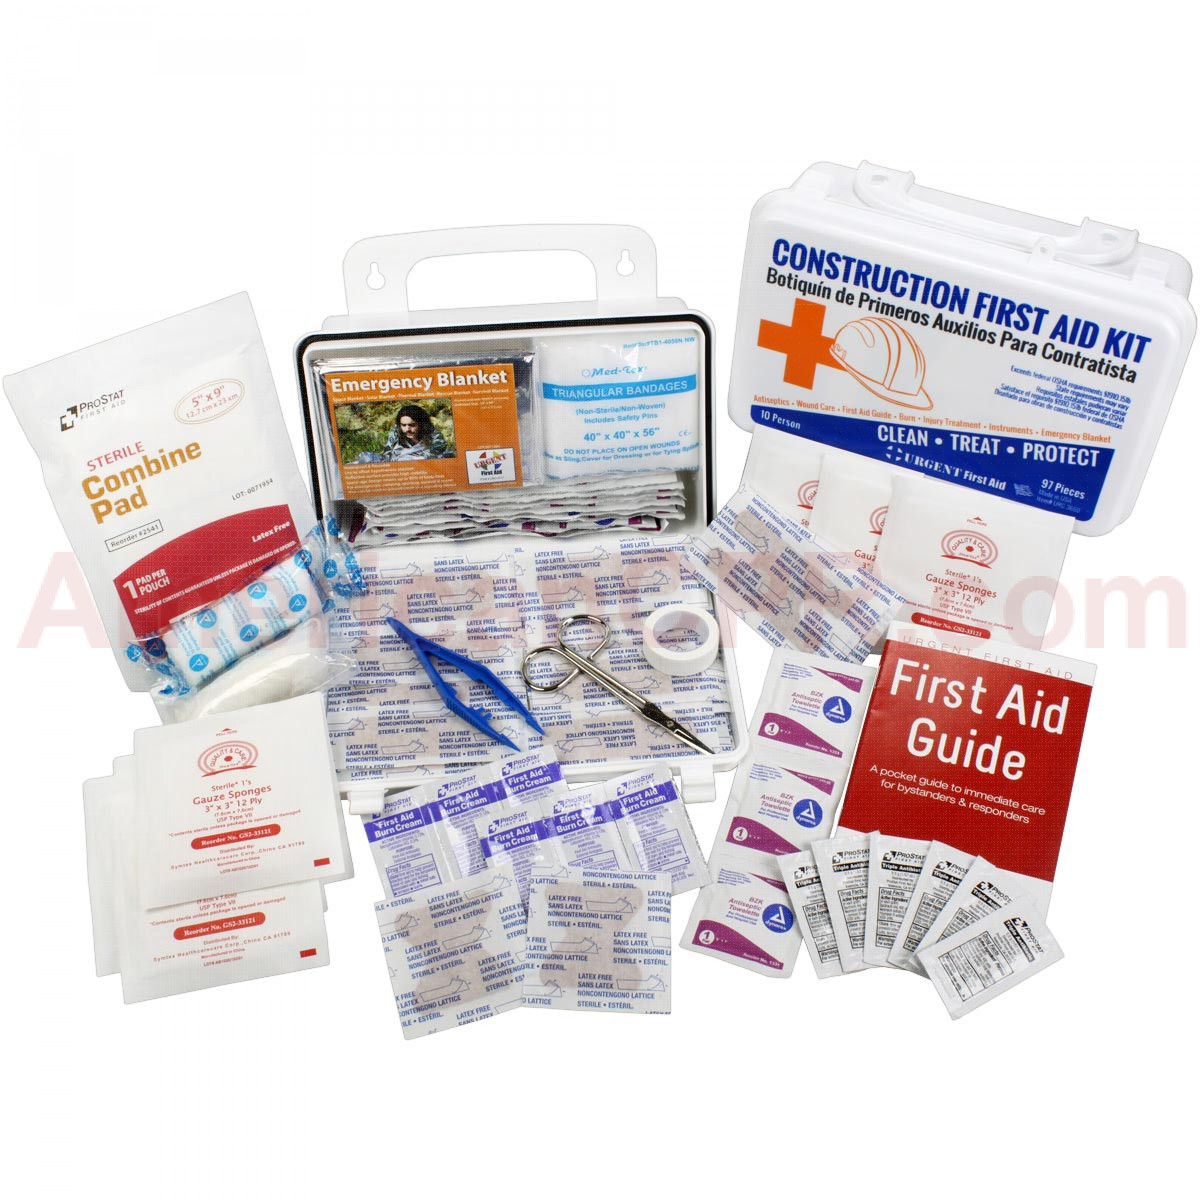 Bilingual OSHA Contractors First Aid Kit for Job Sites up to 10 People – Gasketed Plastic, 97 pieces, Urgent First Aid